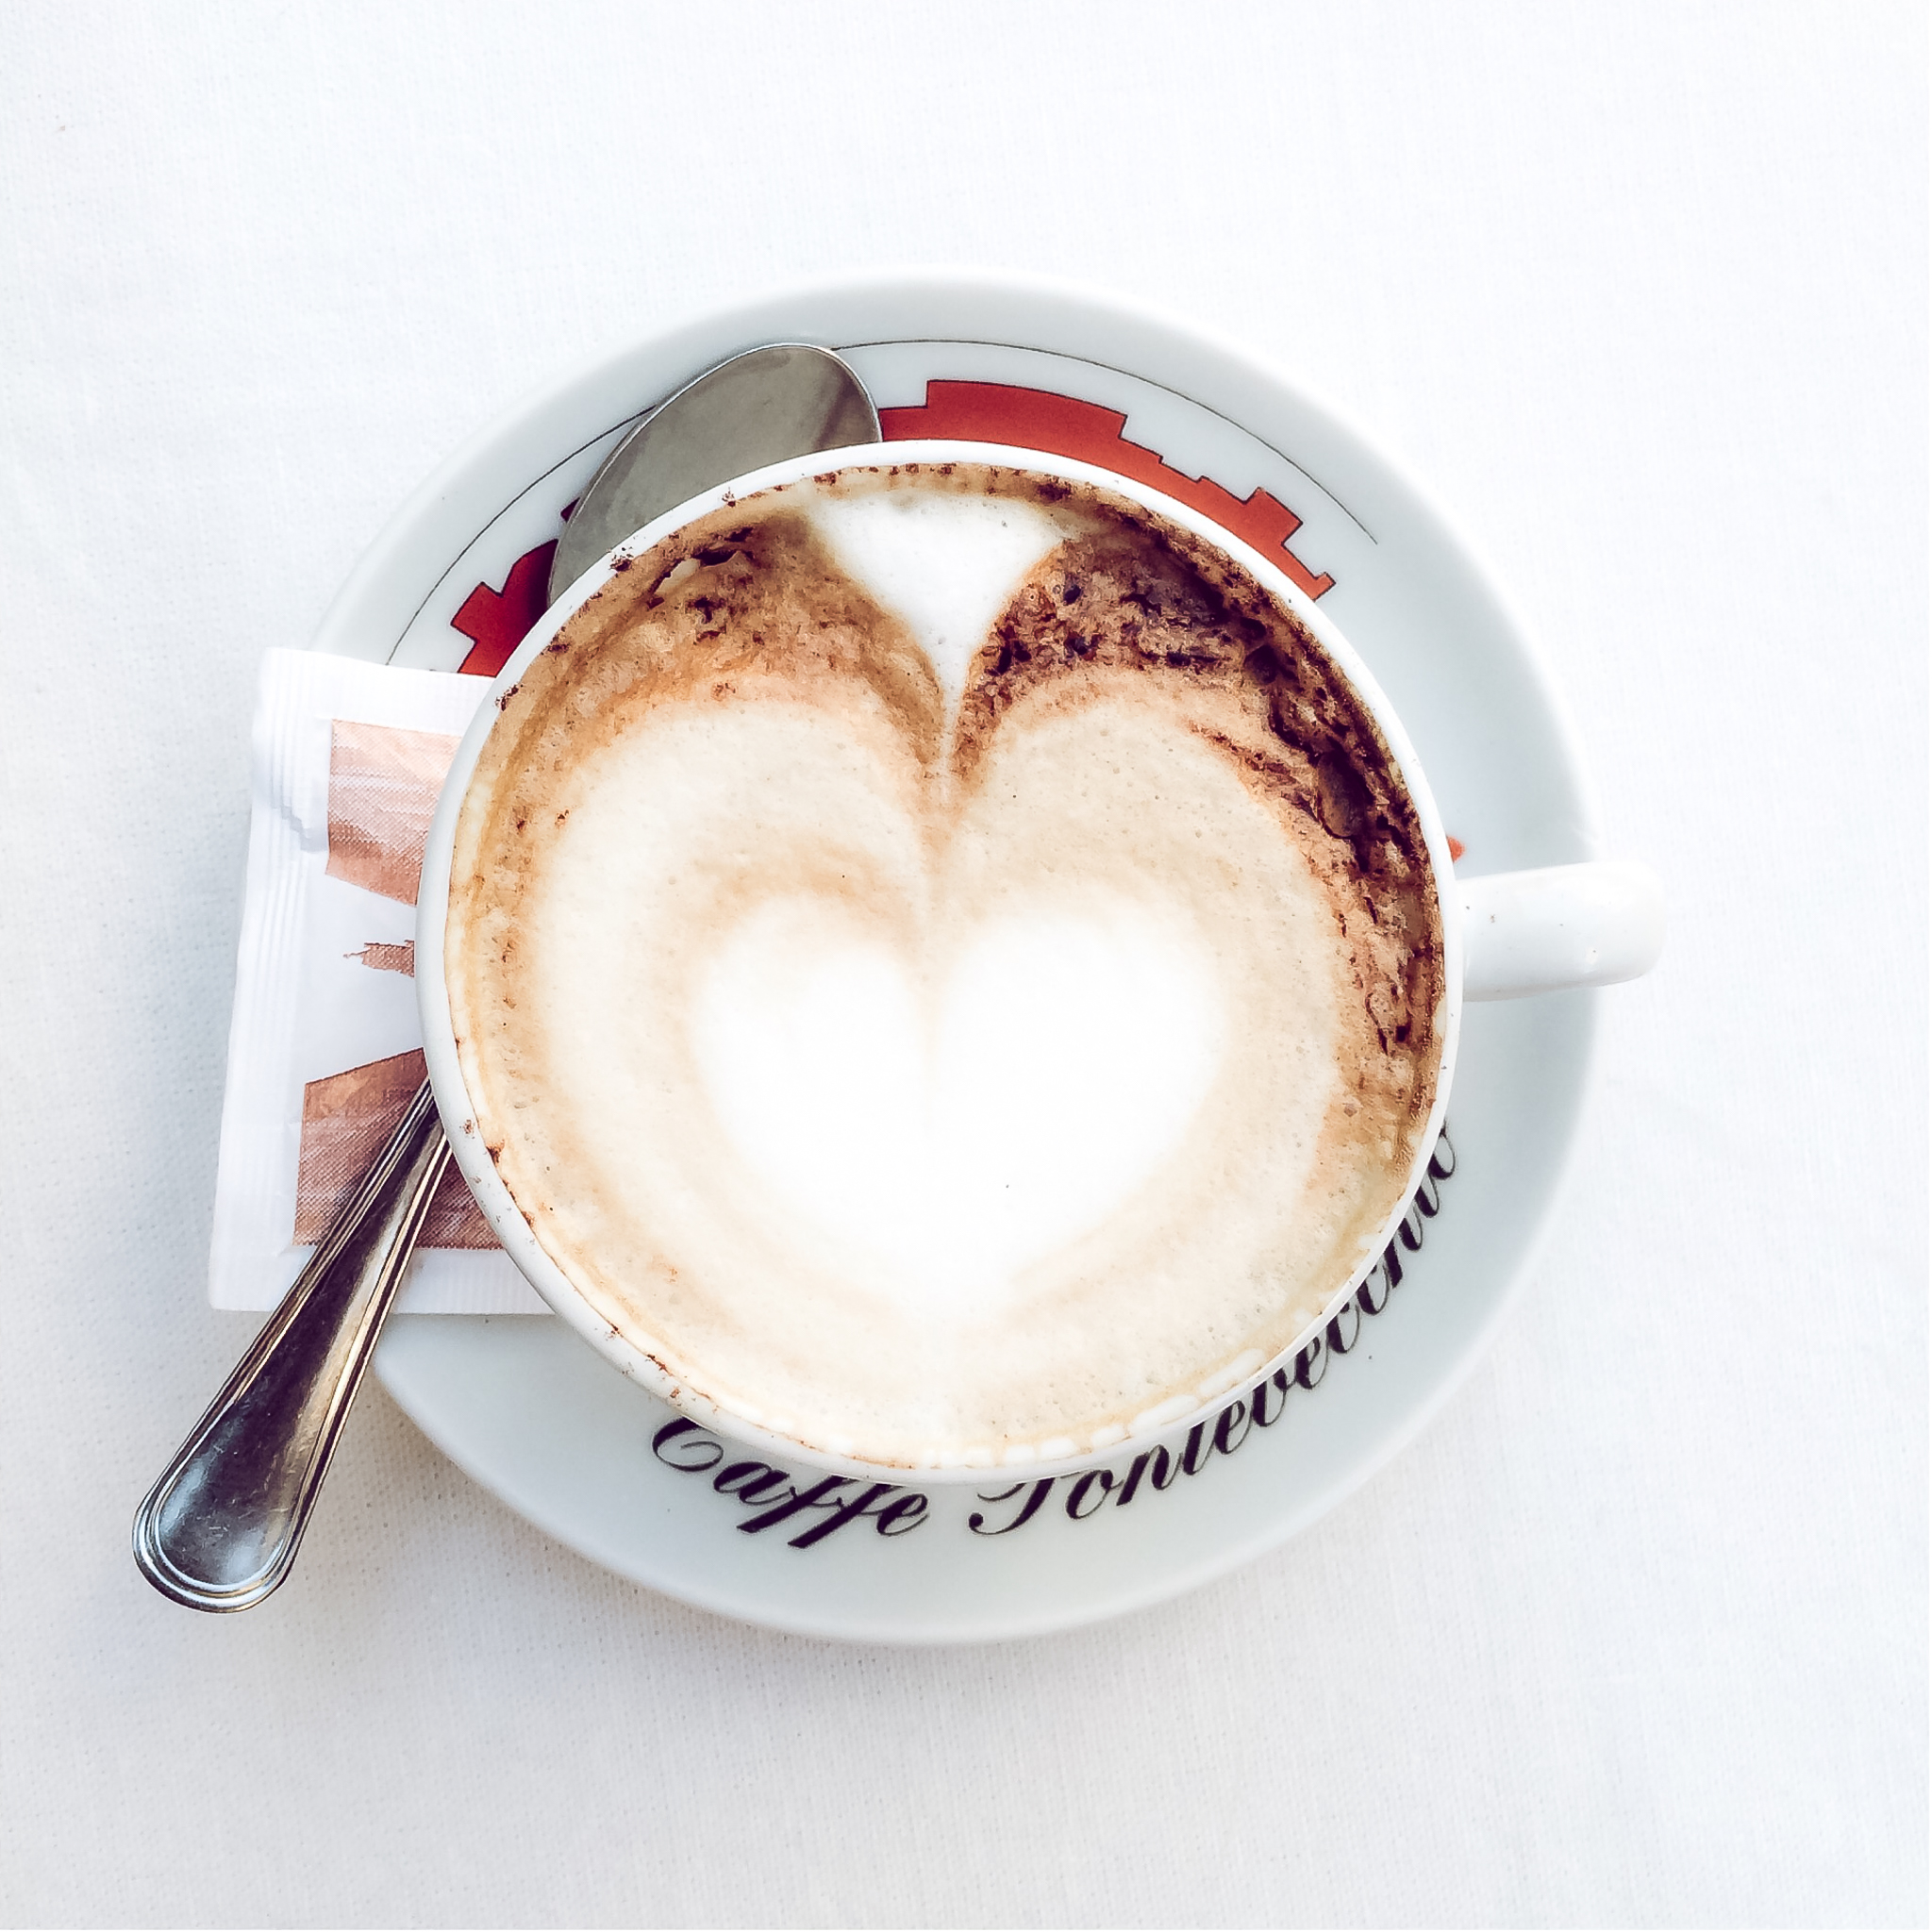 Latte bliss in Florence 2015.